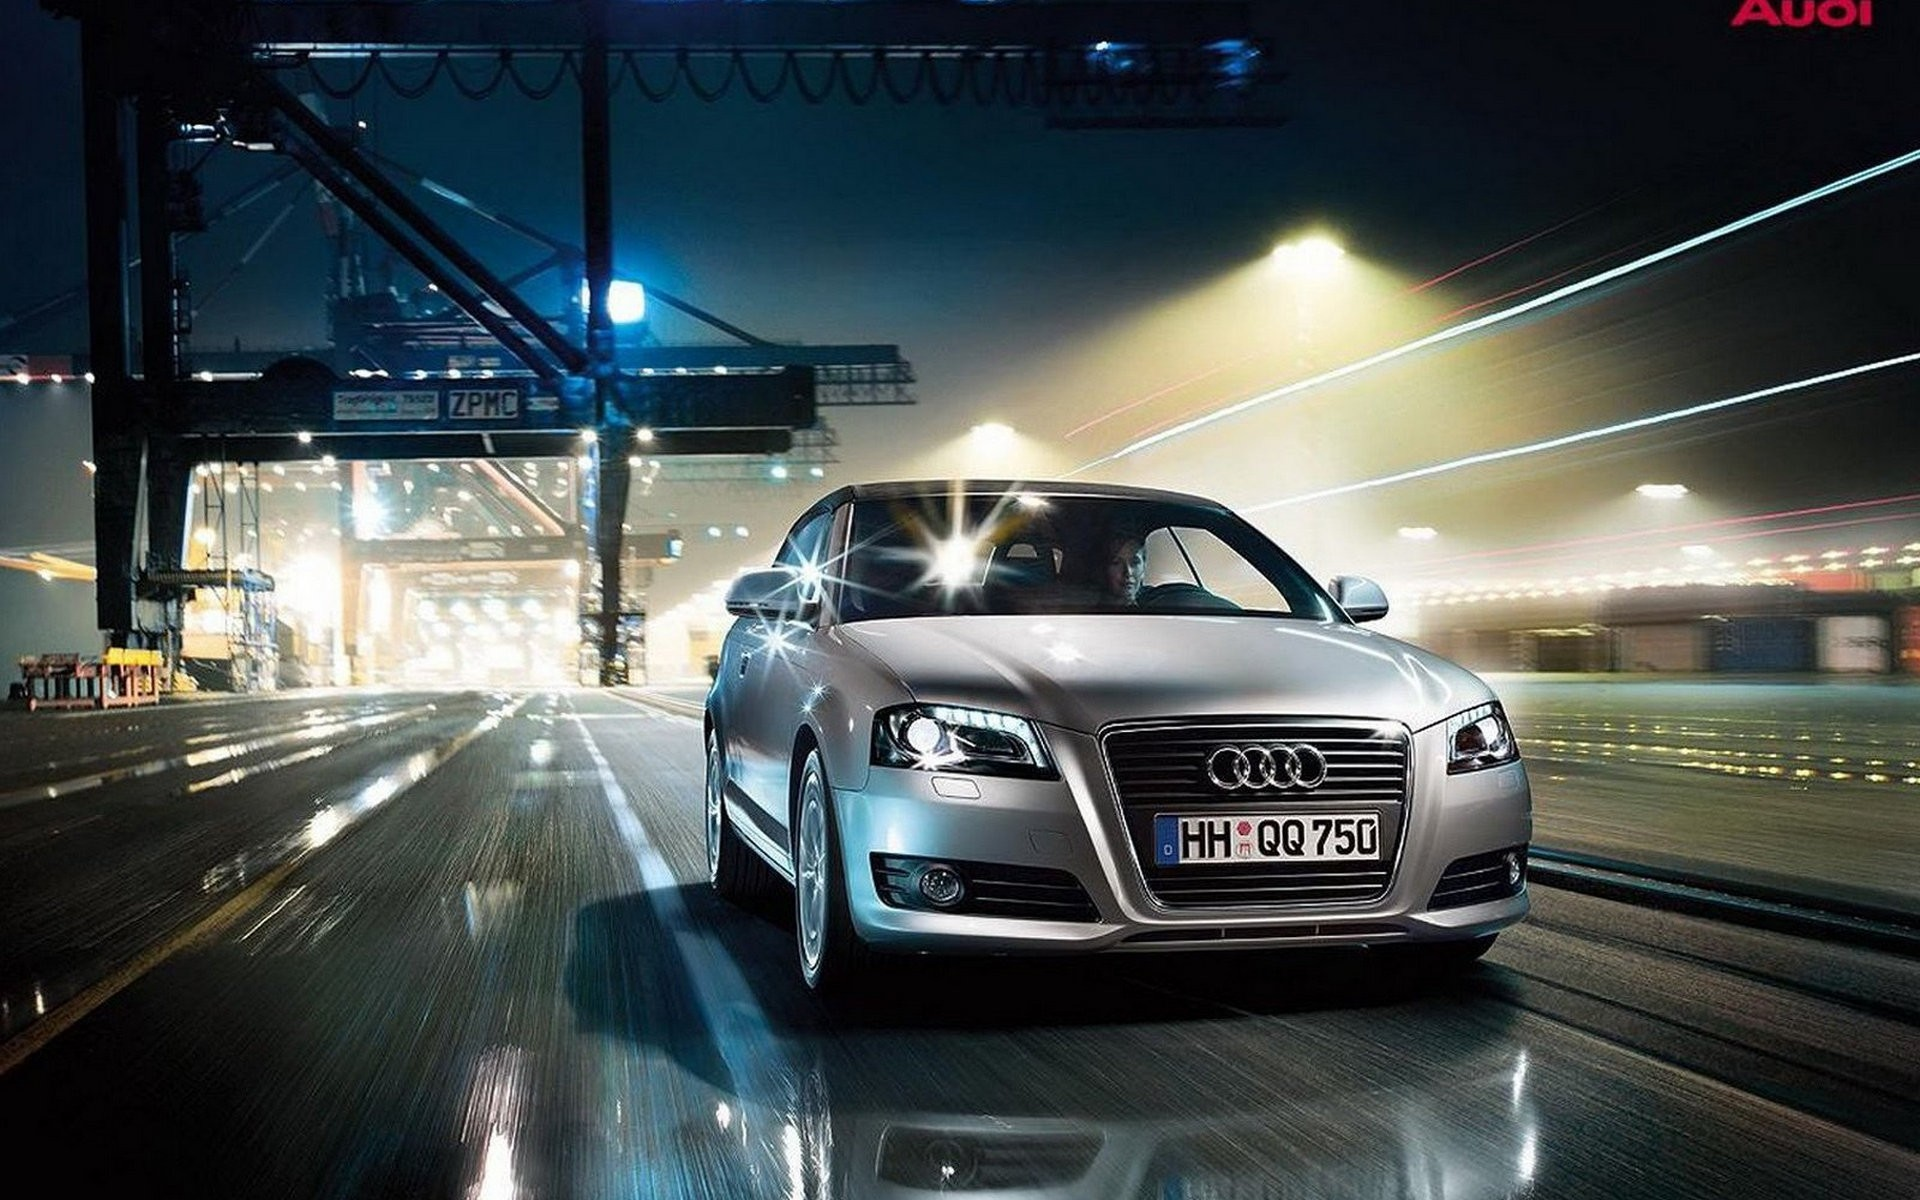 Audi wallpaper for touch screen   Audi Wallpapers Hd Amazing Car 1920x1200